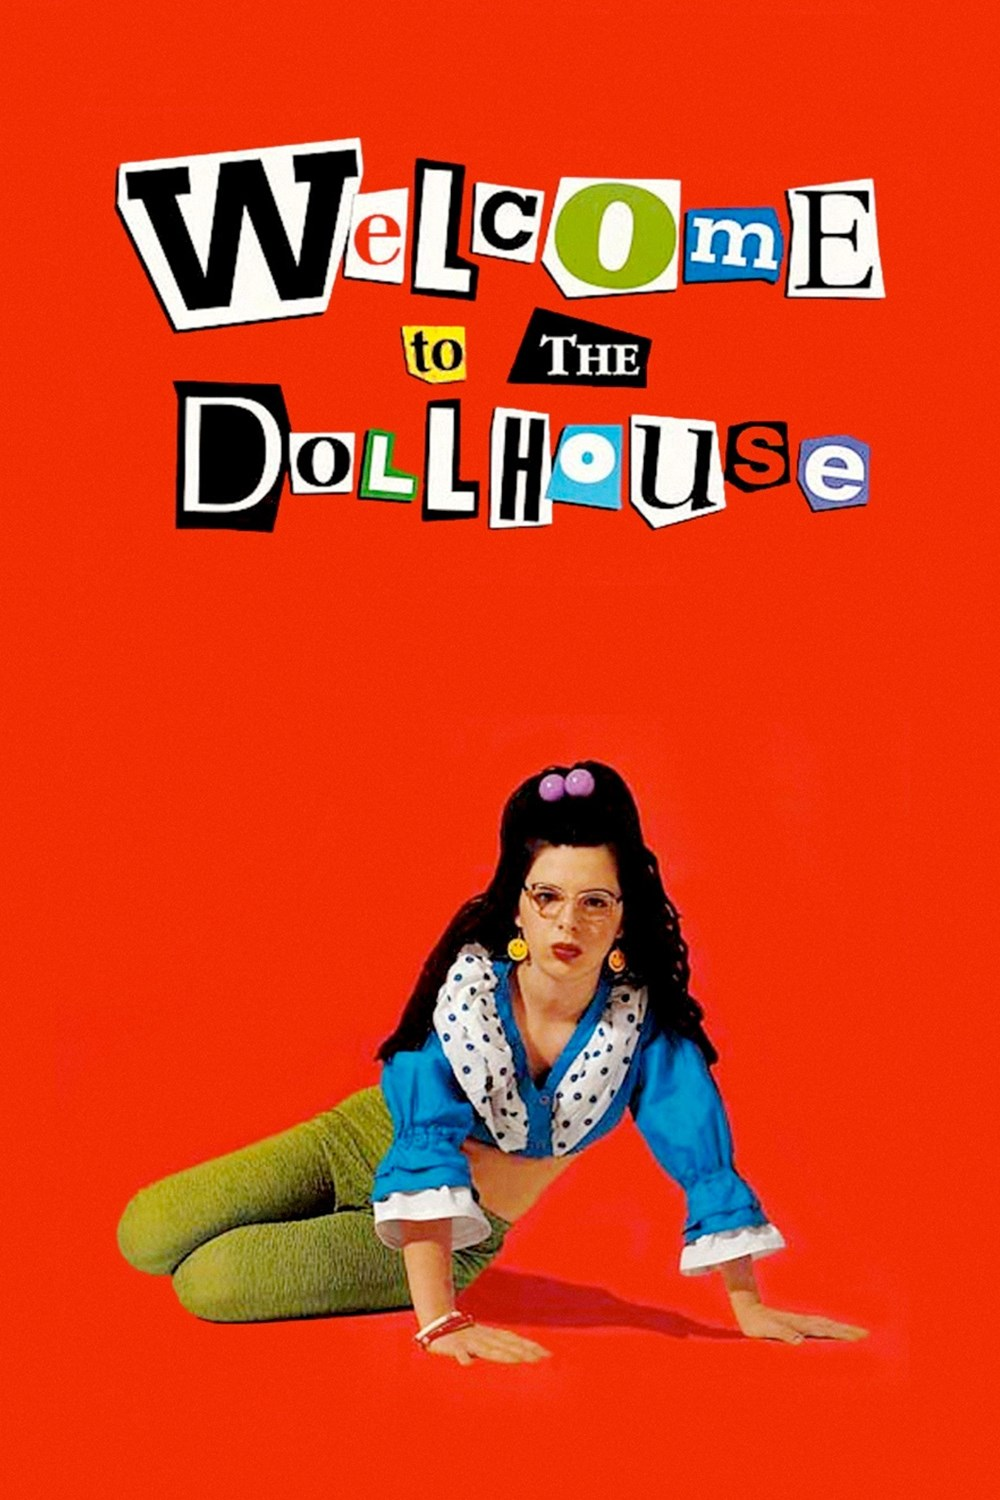 welcome to the dollhouse Welcome to the dollhouse has to be one of the most important films in history solely due to the fact that it shows what an unpopular, rather ugly school age girl goes threw complete with torment.